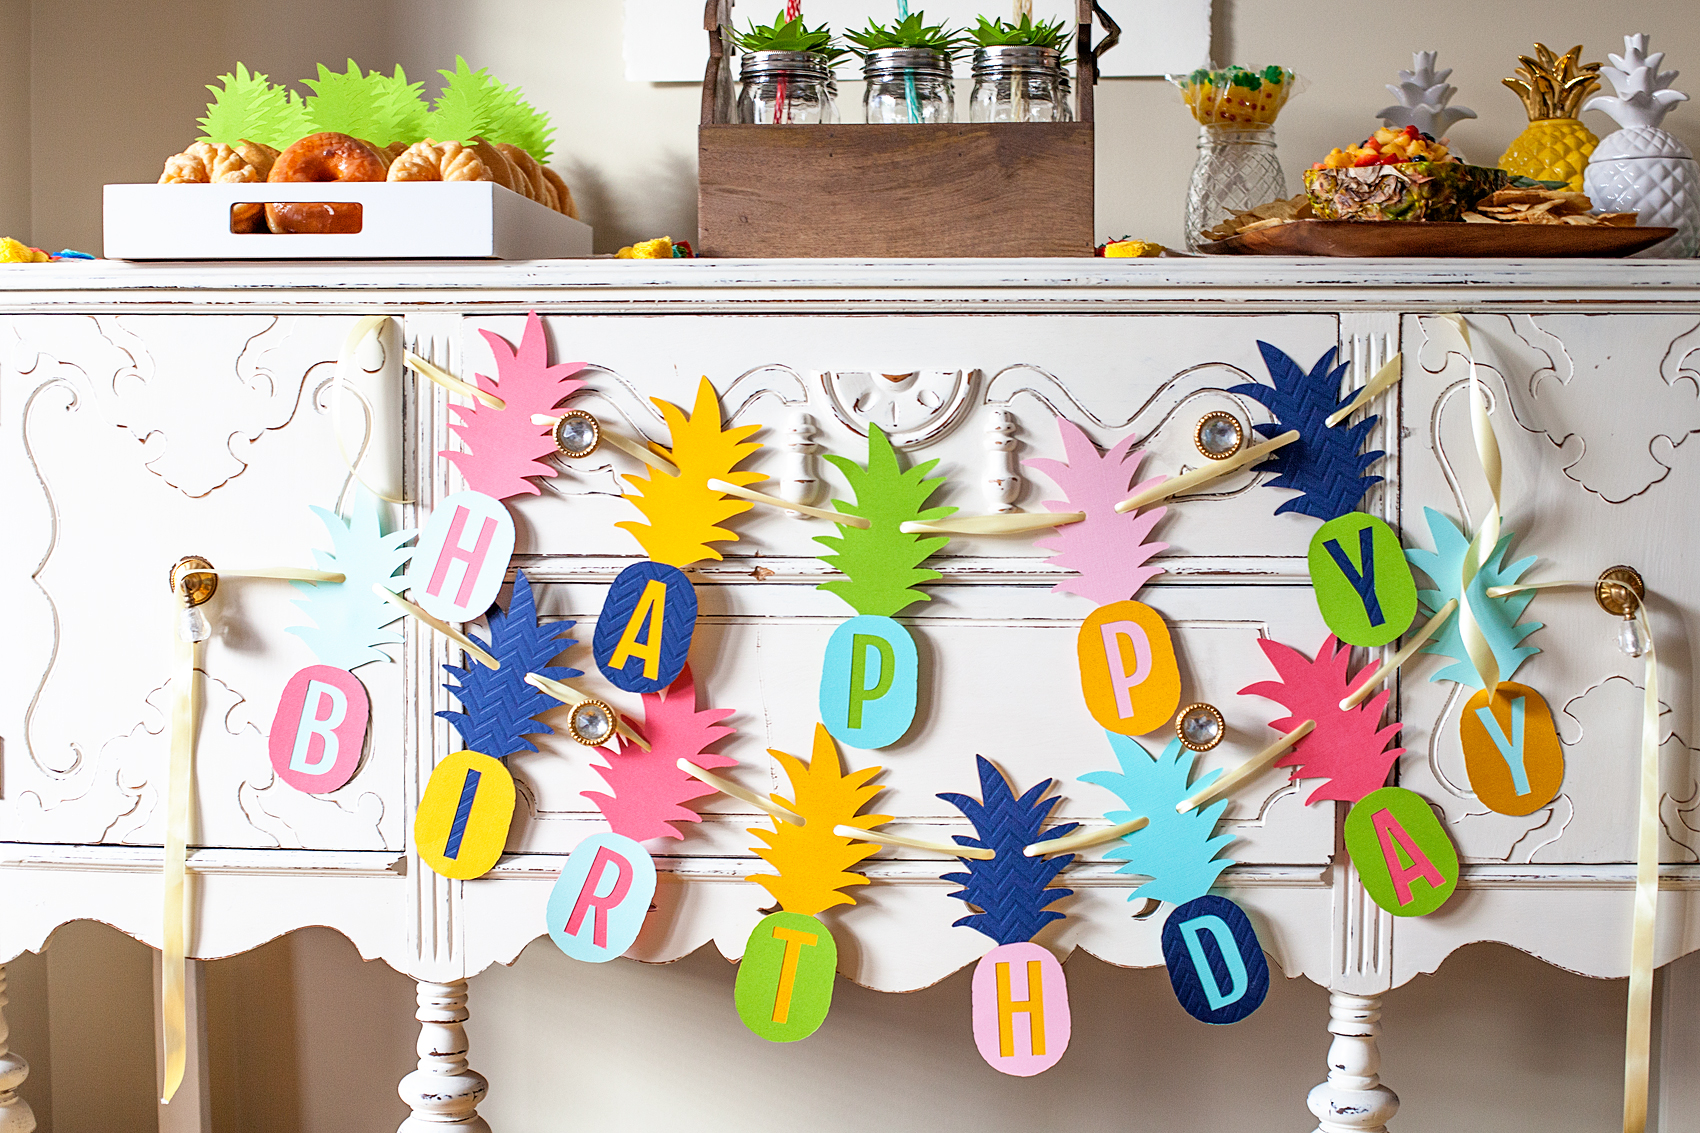 Who doesn't love a whimsical and tasty party? This Pineapple Party Banner is perfect for all ages. Come on over to WhipperBerry to learn how to recreate this EASY party!